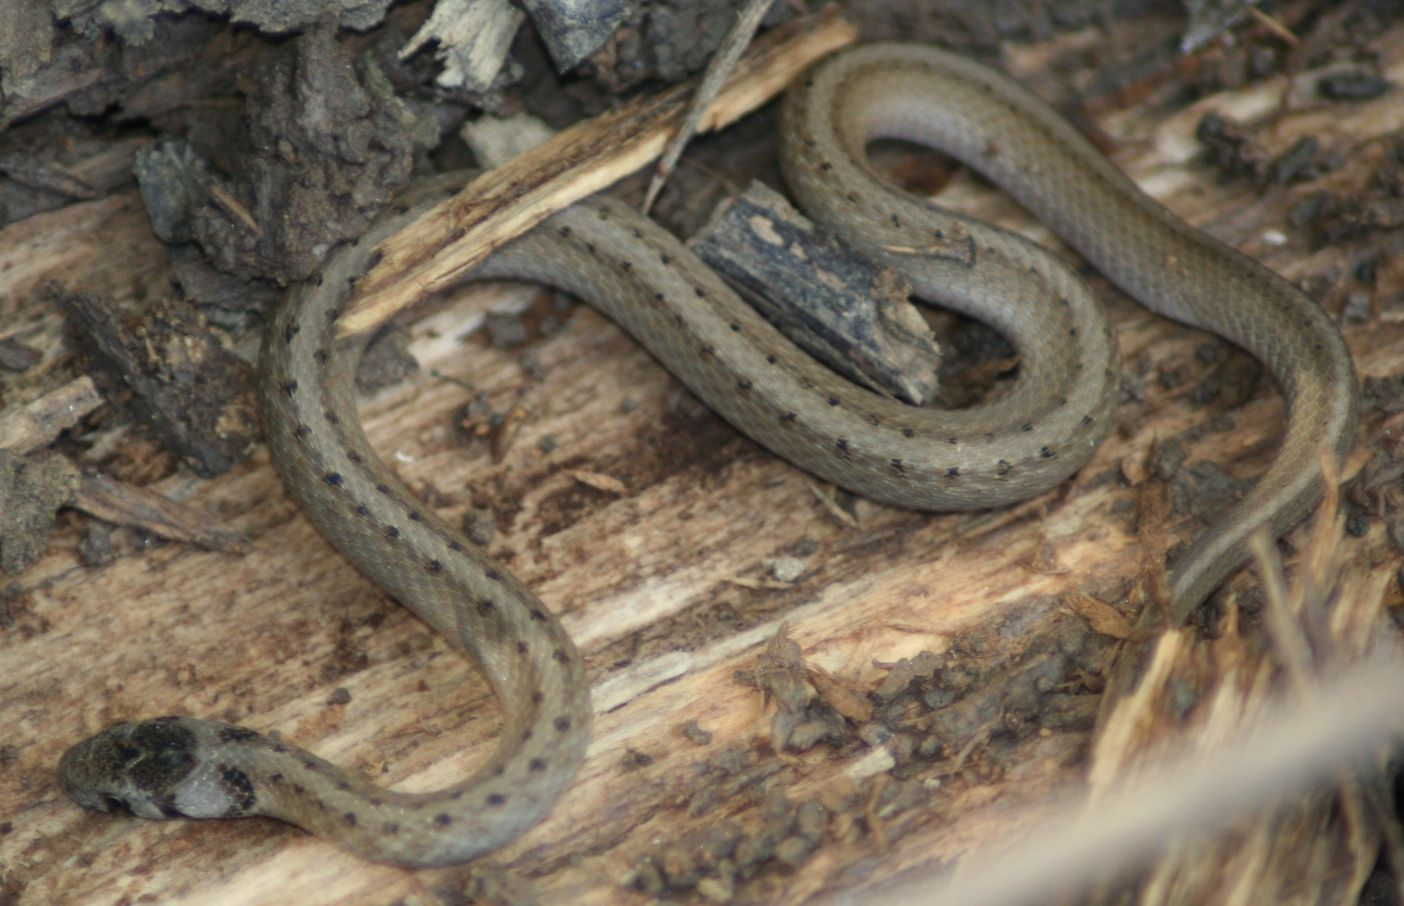 Pin By Esther Vandebunte On Michigan Outdoors Lions Tigers Wings Oh Mi Snake Reptiles Reptiles And Amphibians